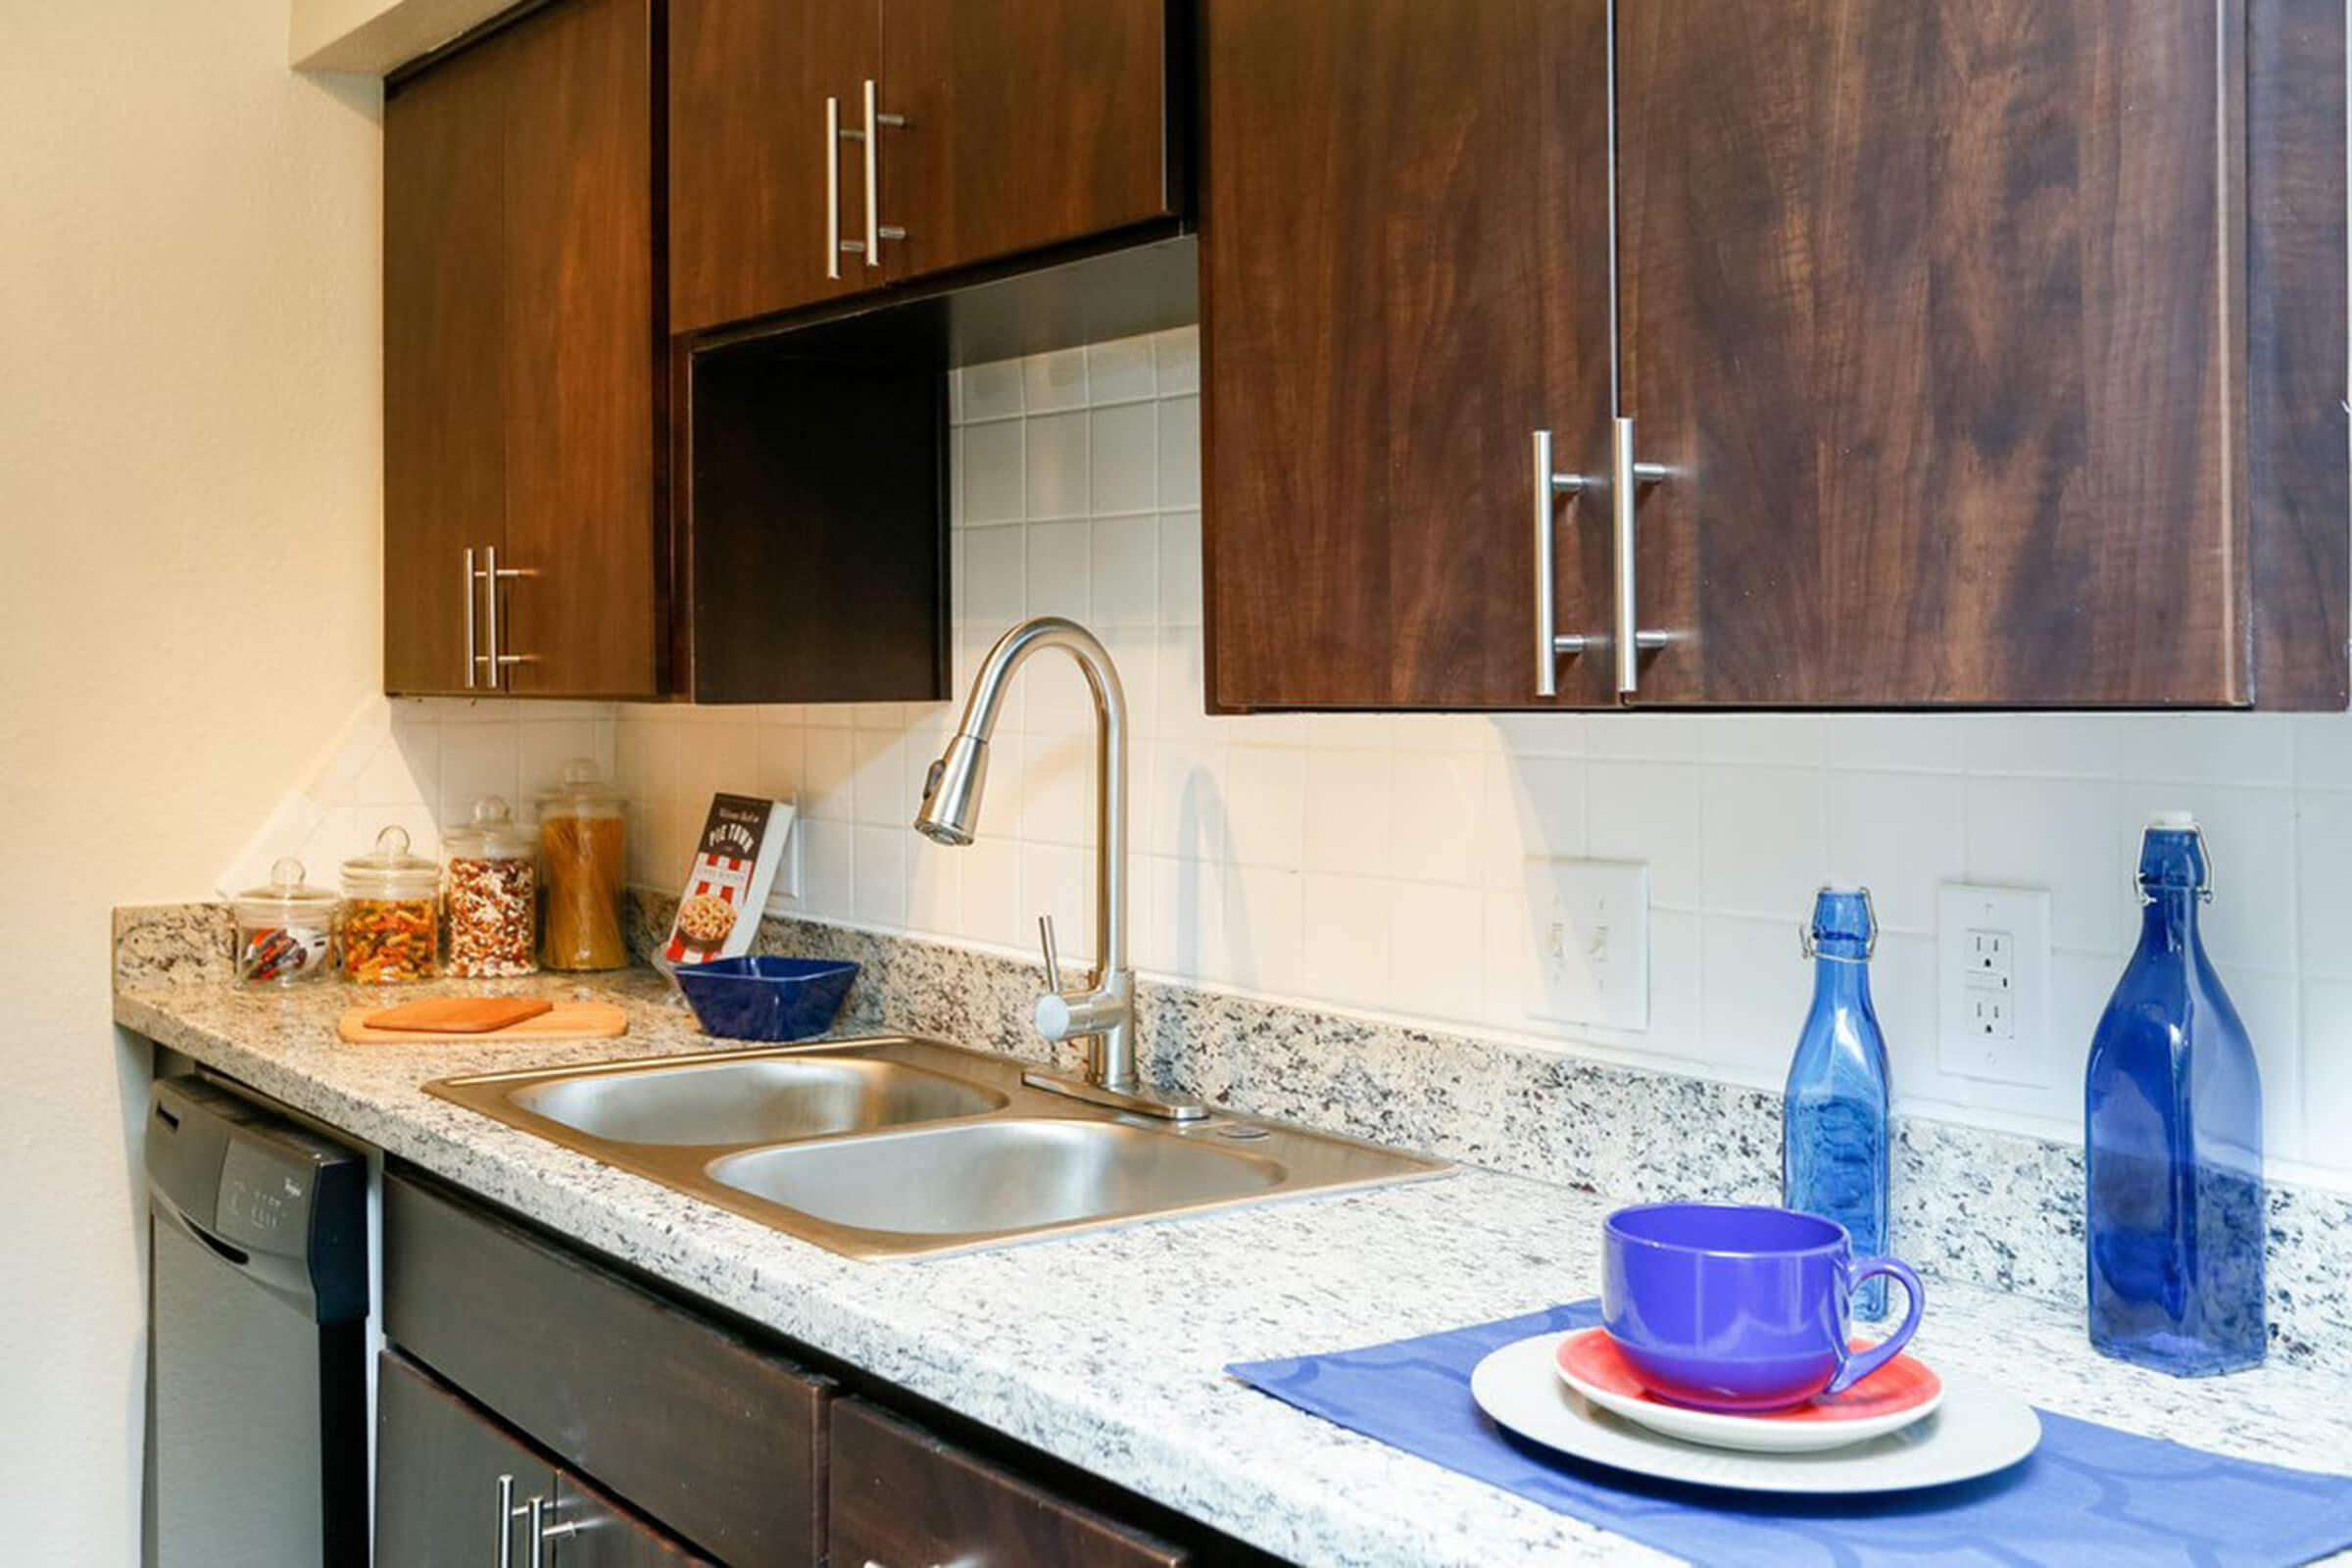 a kitchen with a sink and a bottle on the counter